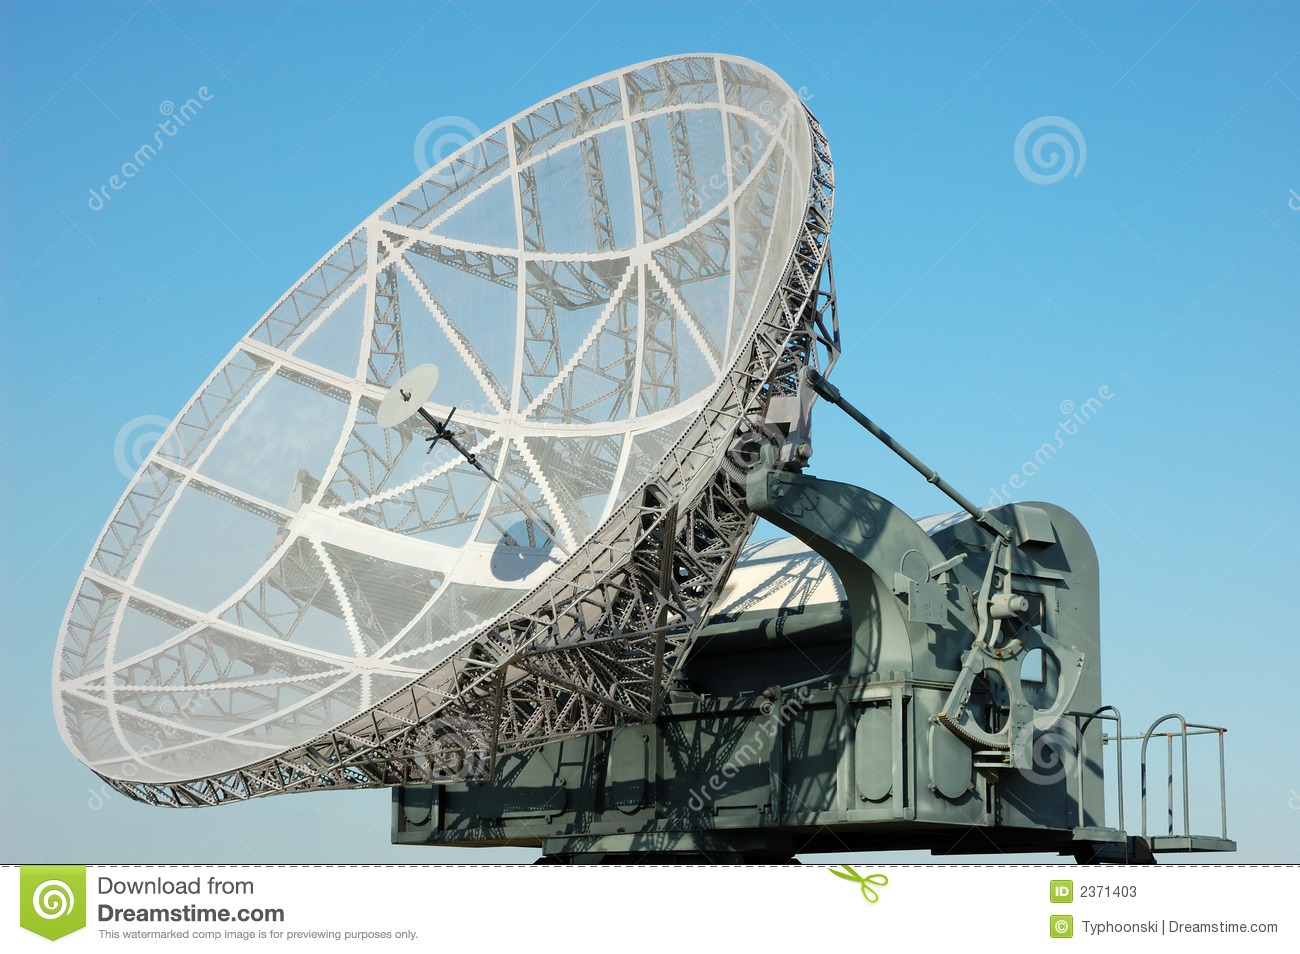 military satellite dish stock image image of dish network 2371403. Black Bedroom Furniture Sets. Home Design Ideas